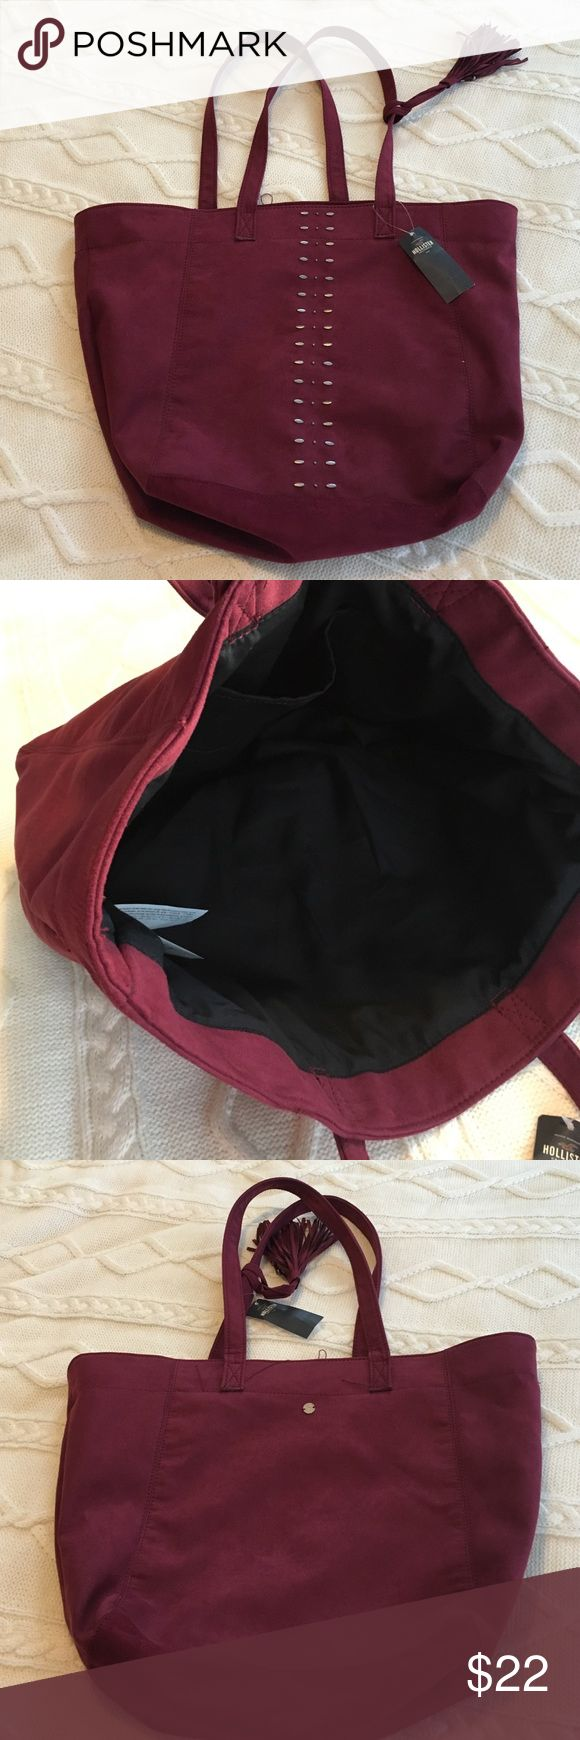 NWT Hollister Tote NWT Maroon Hollister Tote with bronze accents down the center and tassel on the handle. Made of 80% polyester, but has a suede feel to it. The inside is completely black with one pocket. Hollister Bags Totes